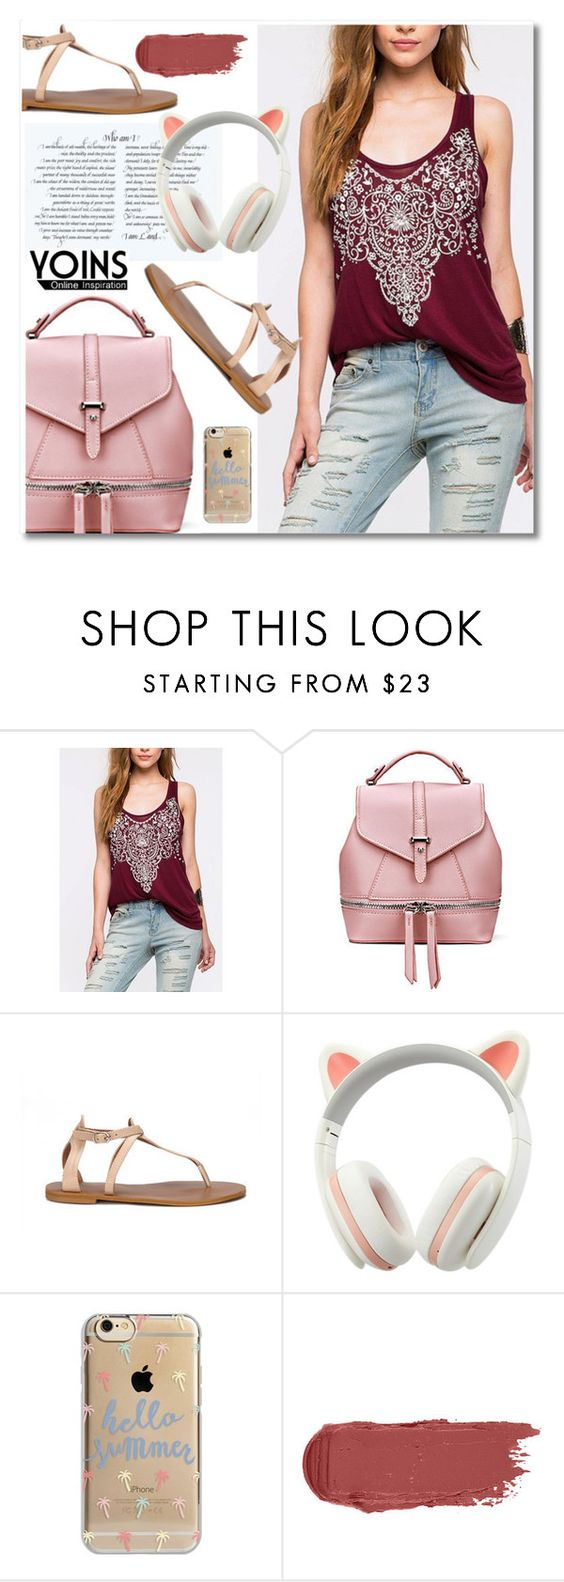 """""""Yoins #11"""" by aida-nurkovic ❤ liked on Polyvore featuring Agent 18, polyvoreeditorial, polyvorefashion, polyvoreset and yoins"""